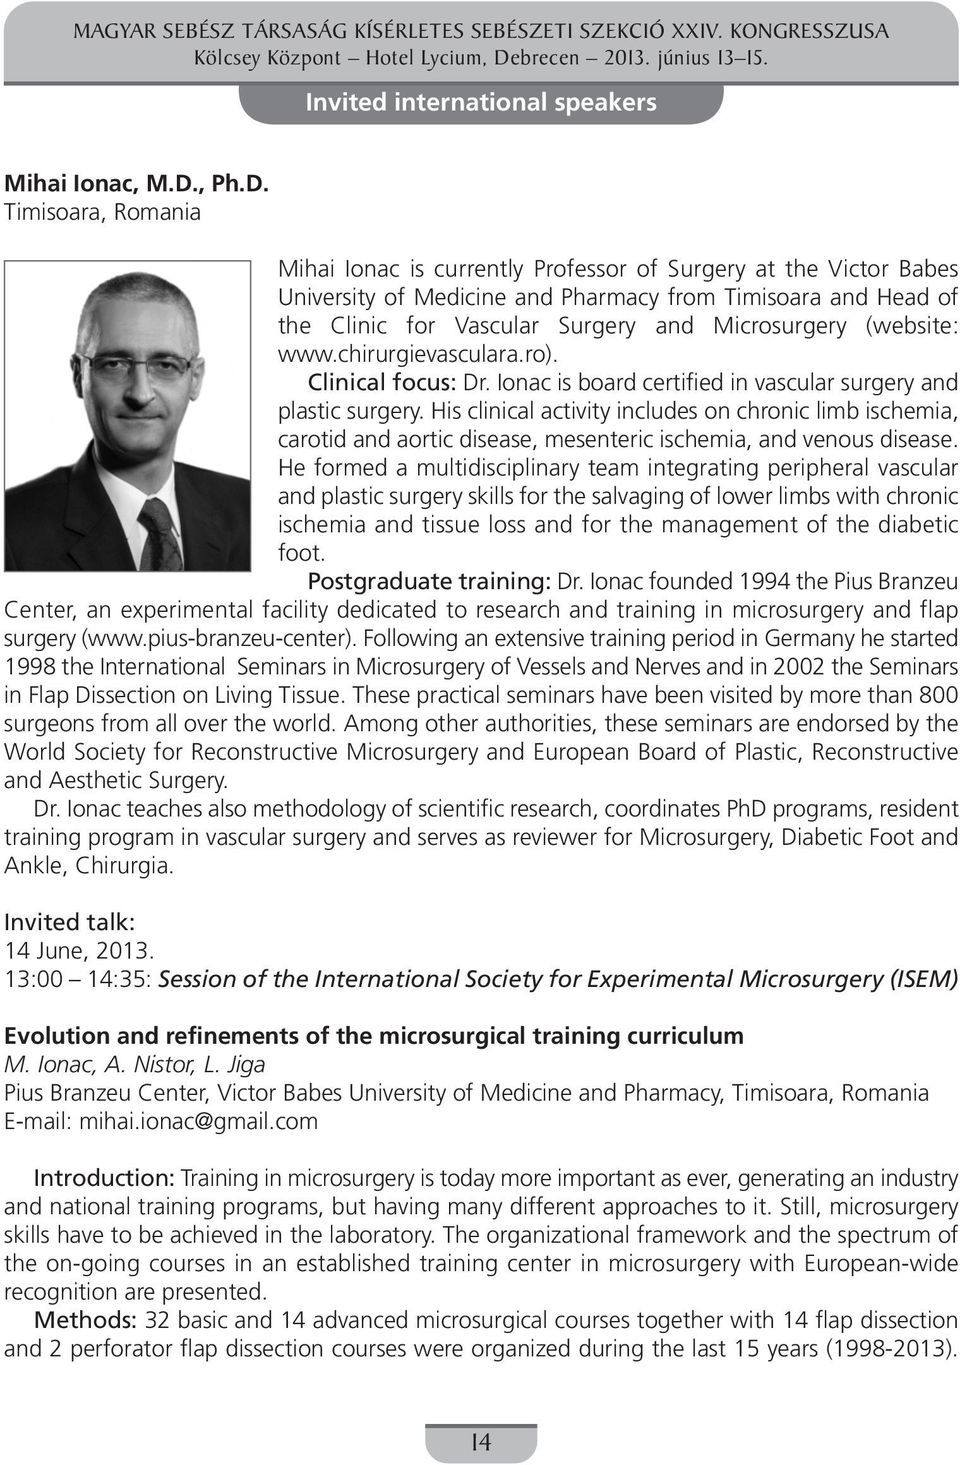 Timisoara, Romania Mihai Ionac is currently Professor of Surgery at the Victor Babes University of Medicine and Pharmacy from Timisoara and Head of the Clinic for Vascular Surgery and Microsurgery